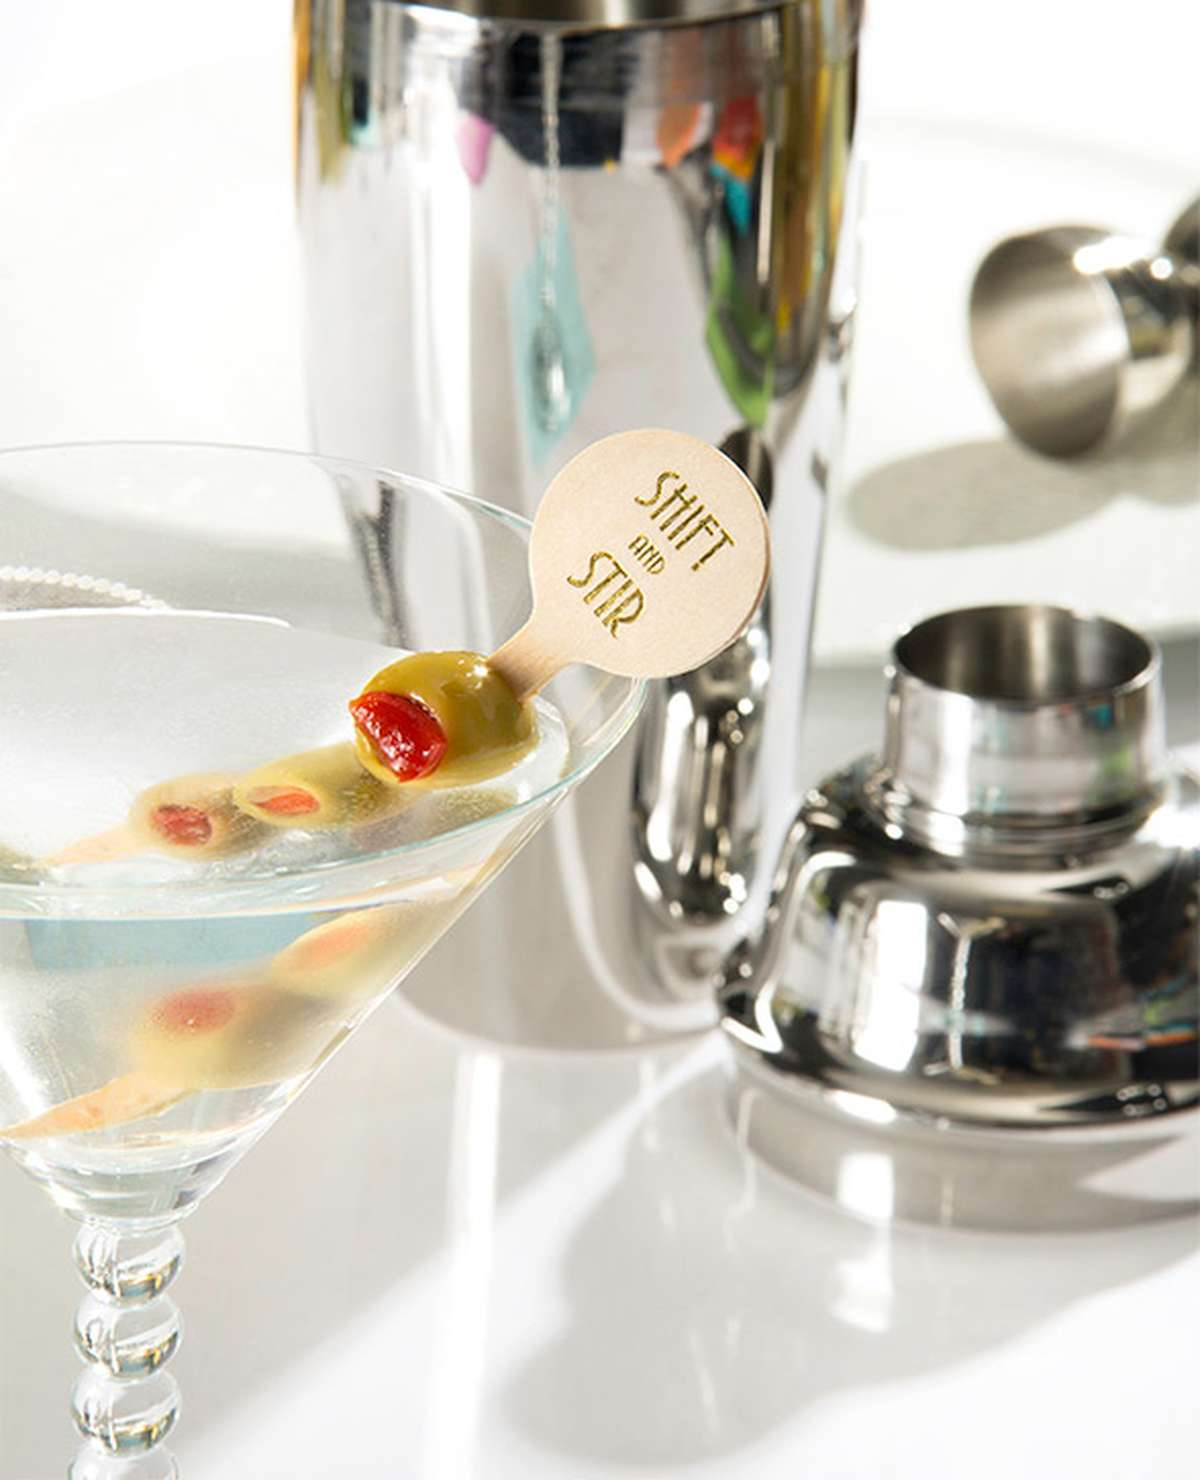 Custom Cocktail Stirrer with Martini